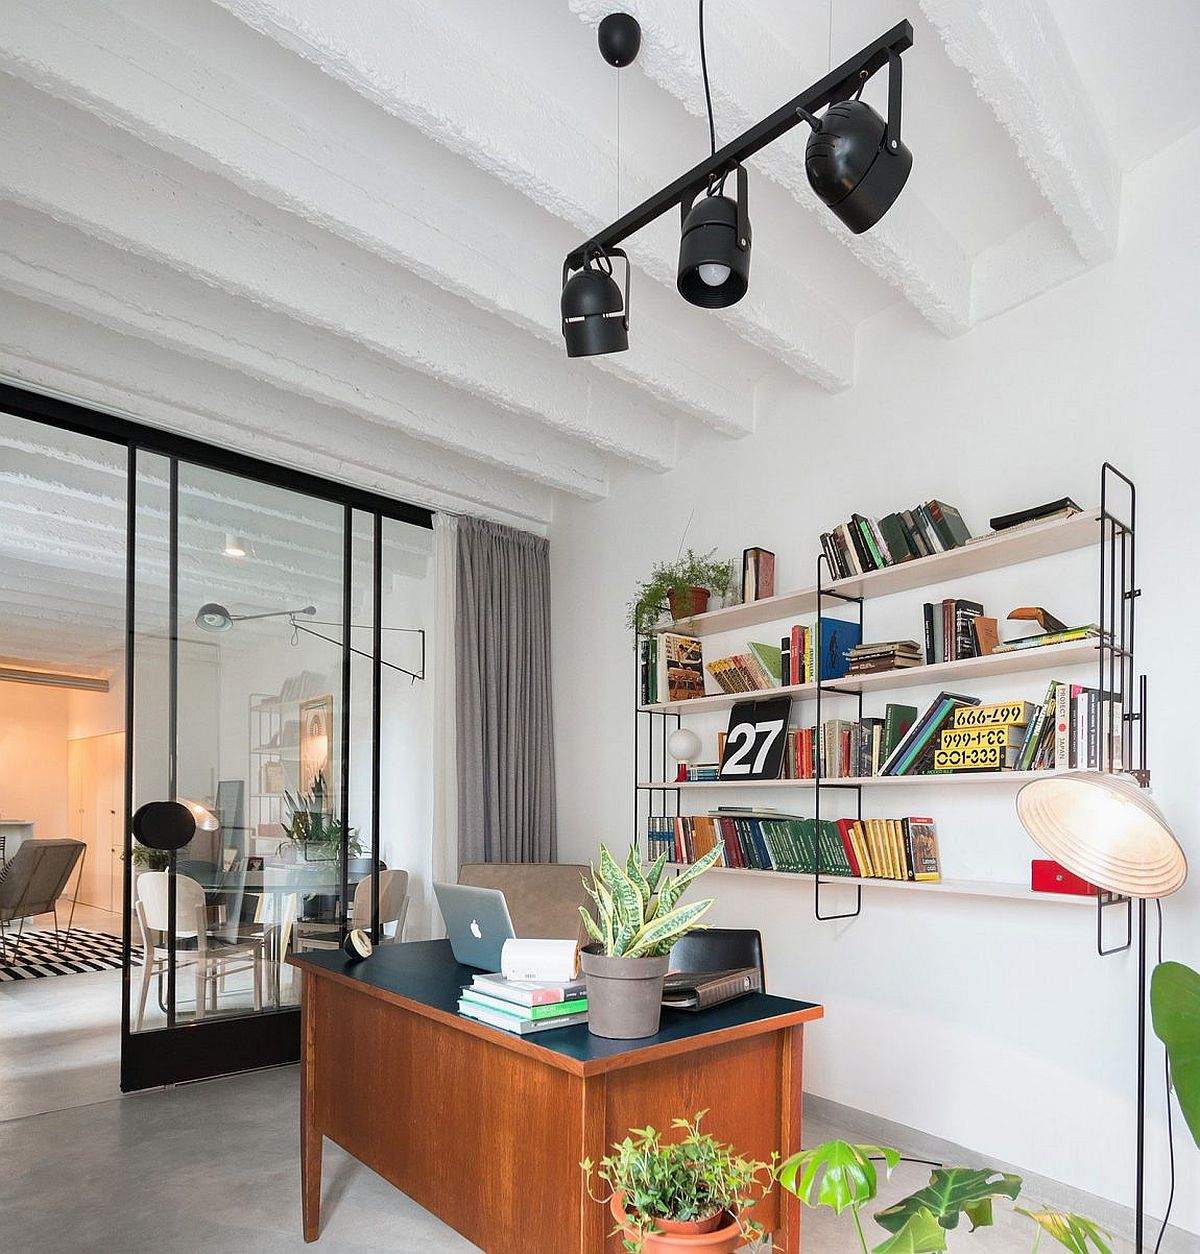 Custom furniture and open shelves for the contemporary home office